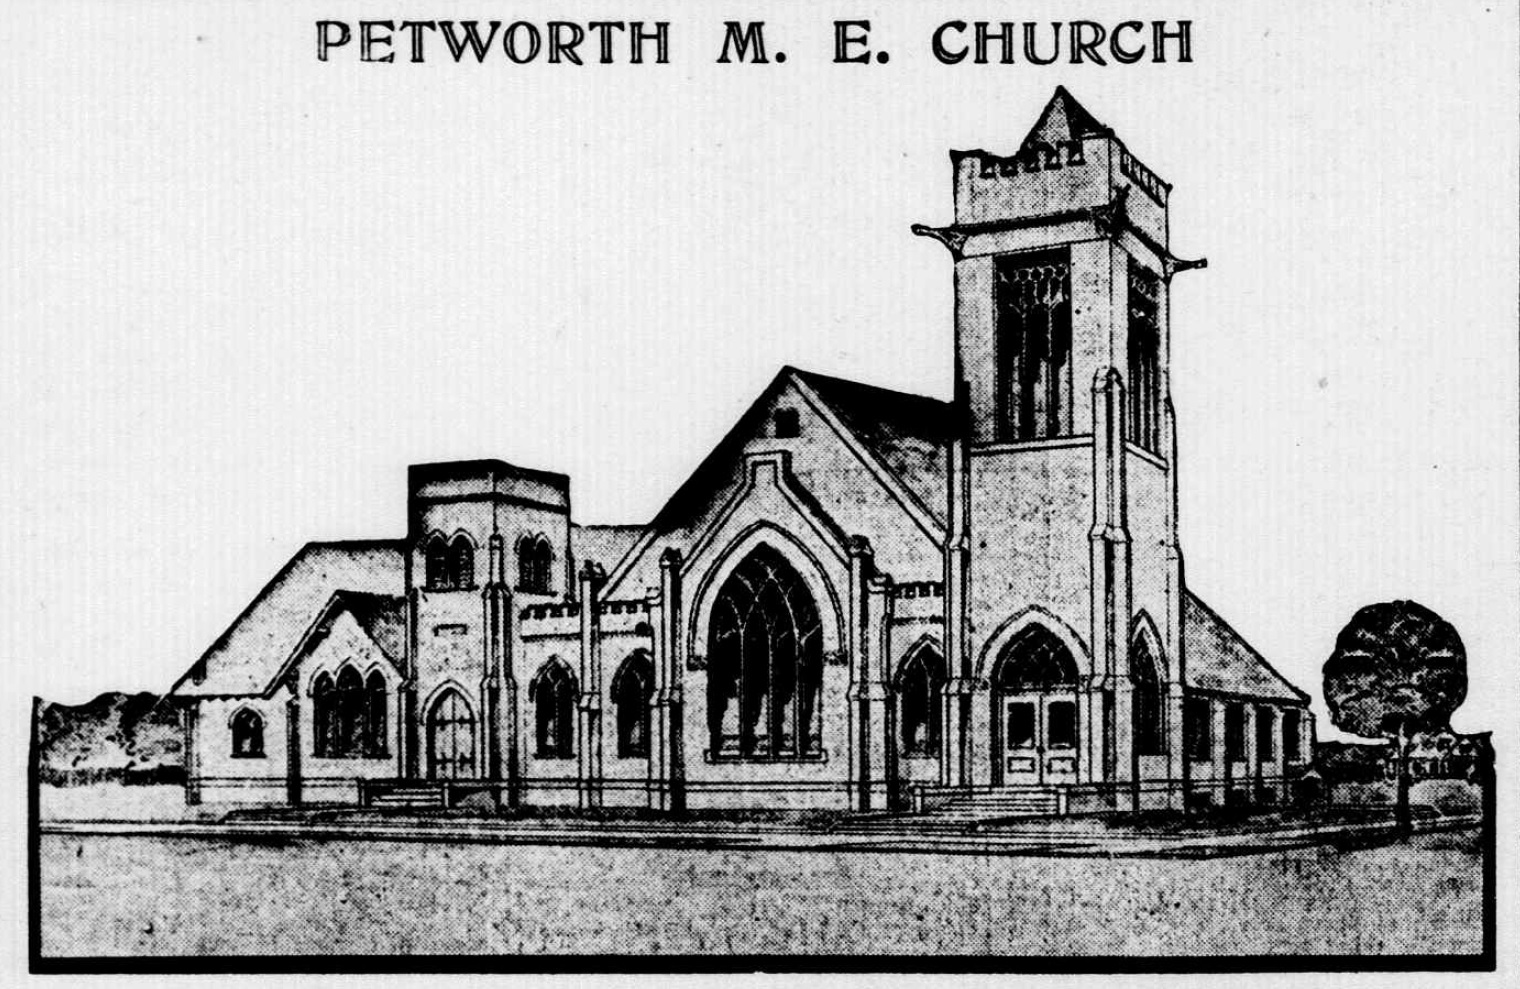 Church Auditorium Drawings 1909 Drawing of New Petworth